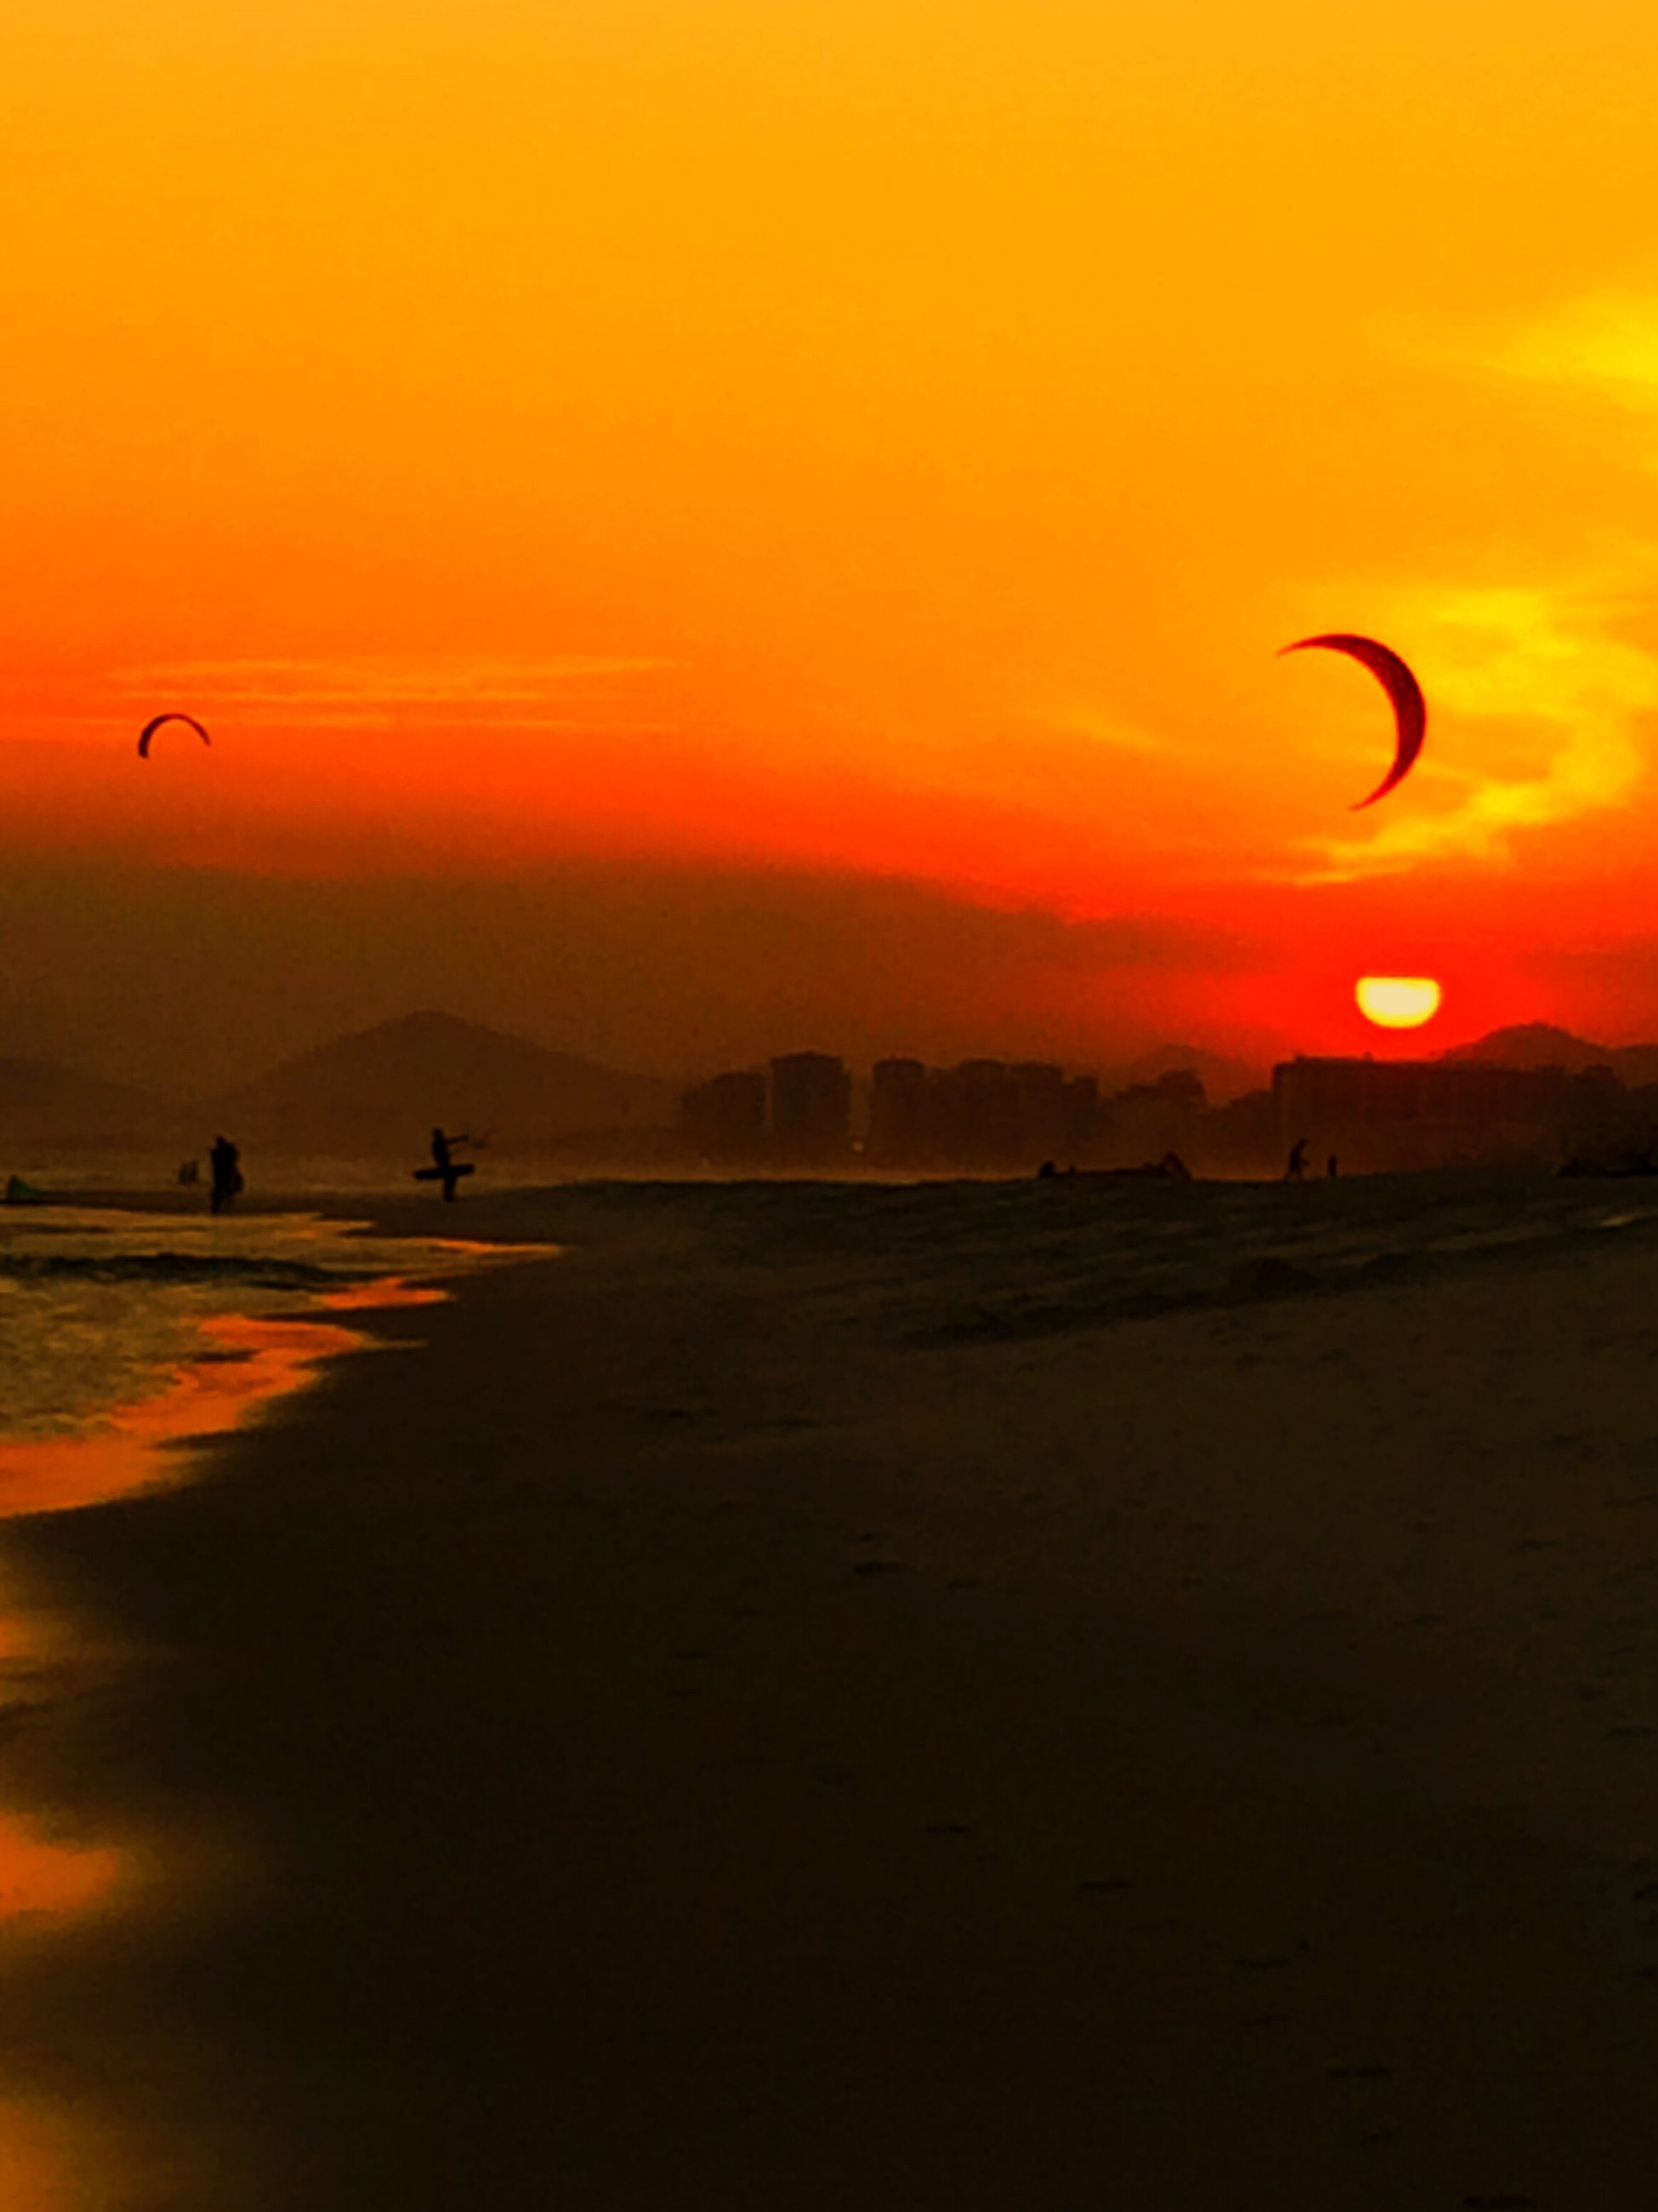 sunset, tranquil scene, scenics, tranquility, orange color, sun, beauty in nature, silhouette, idyllic, mid-air, mountain, nature, flying, sky, water, non-urban scene, moody sky, outdoors, majestic, enjoyment, romantic sky, dramatic sky, atmosphere, dark, paragliding, vacations